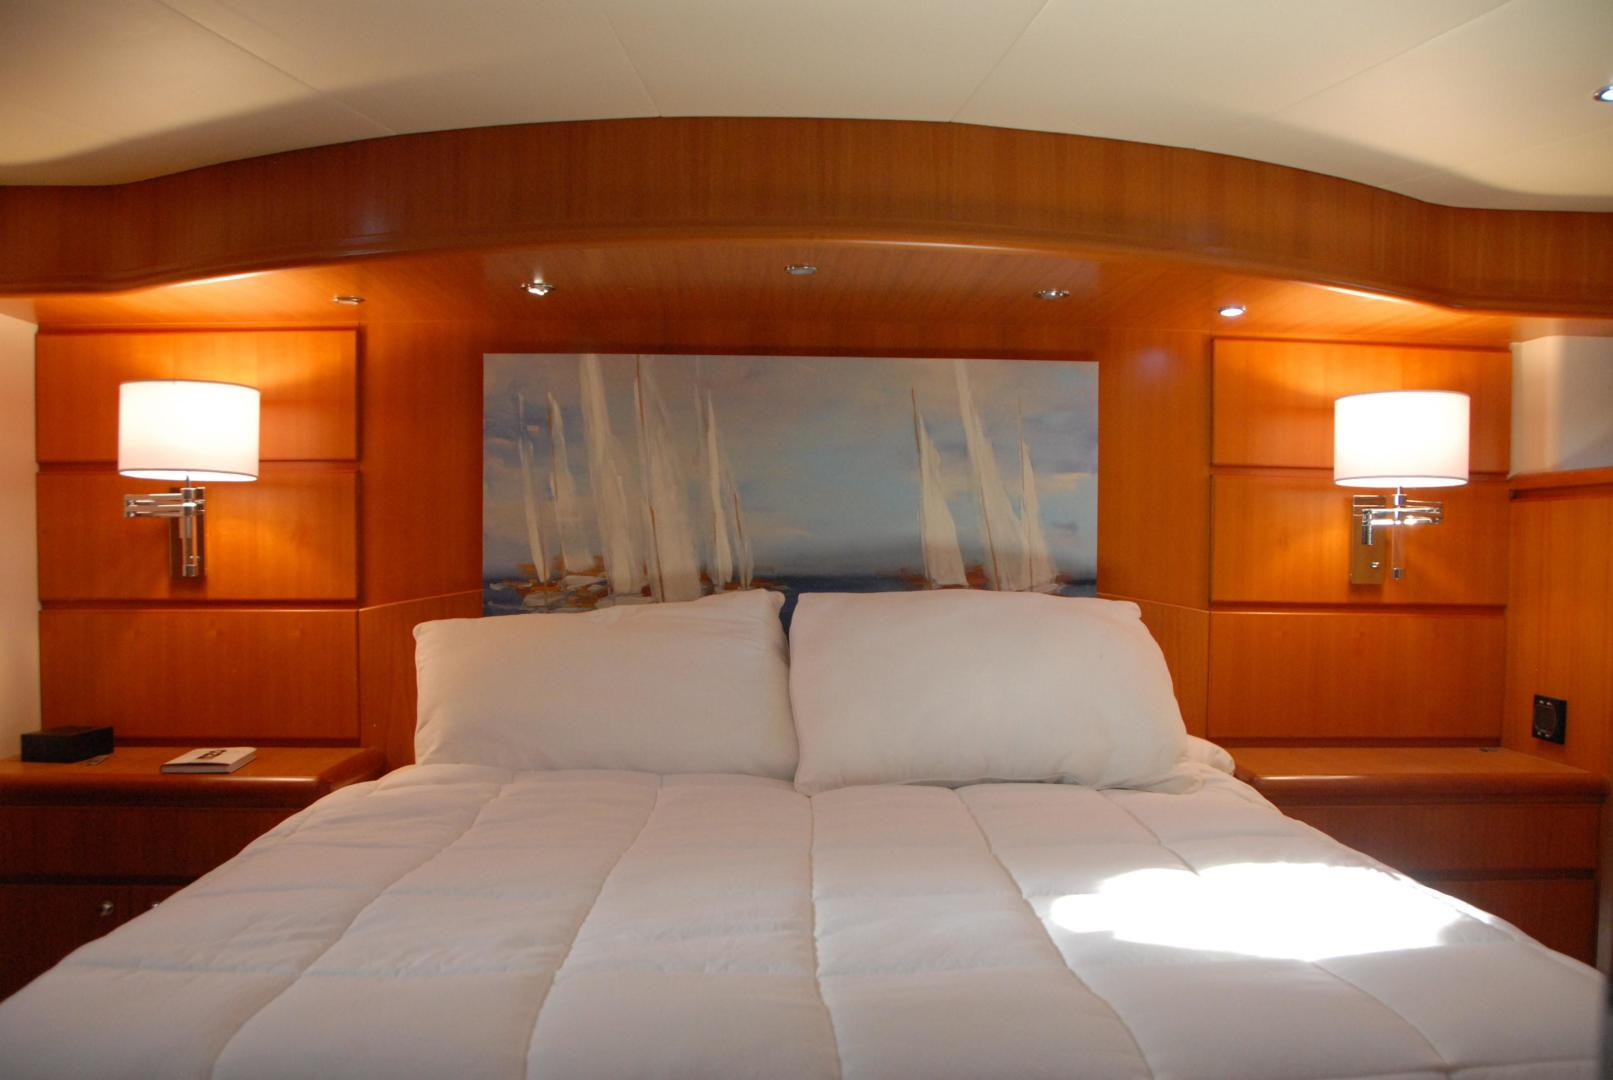 West Bay-Sonship 2003-ROOM SERVICE Fort Lauderdale-Florida-United States-Master Stateroom-474087 | Thumbnail